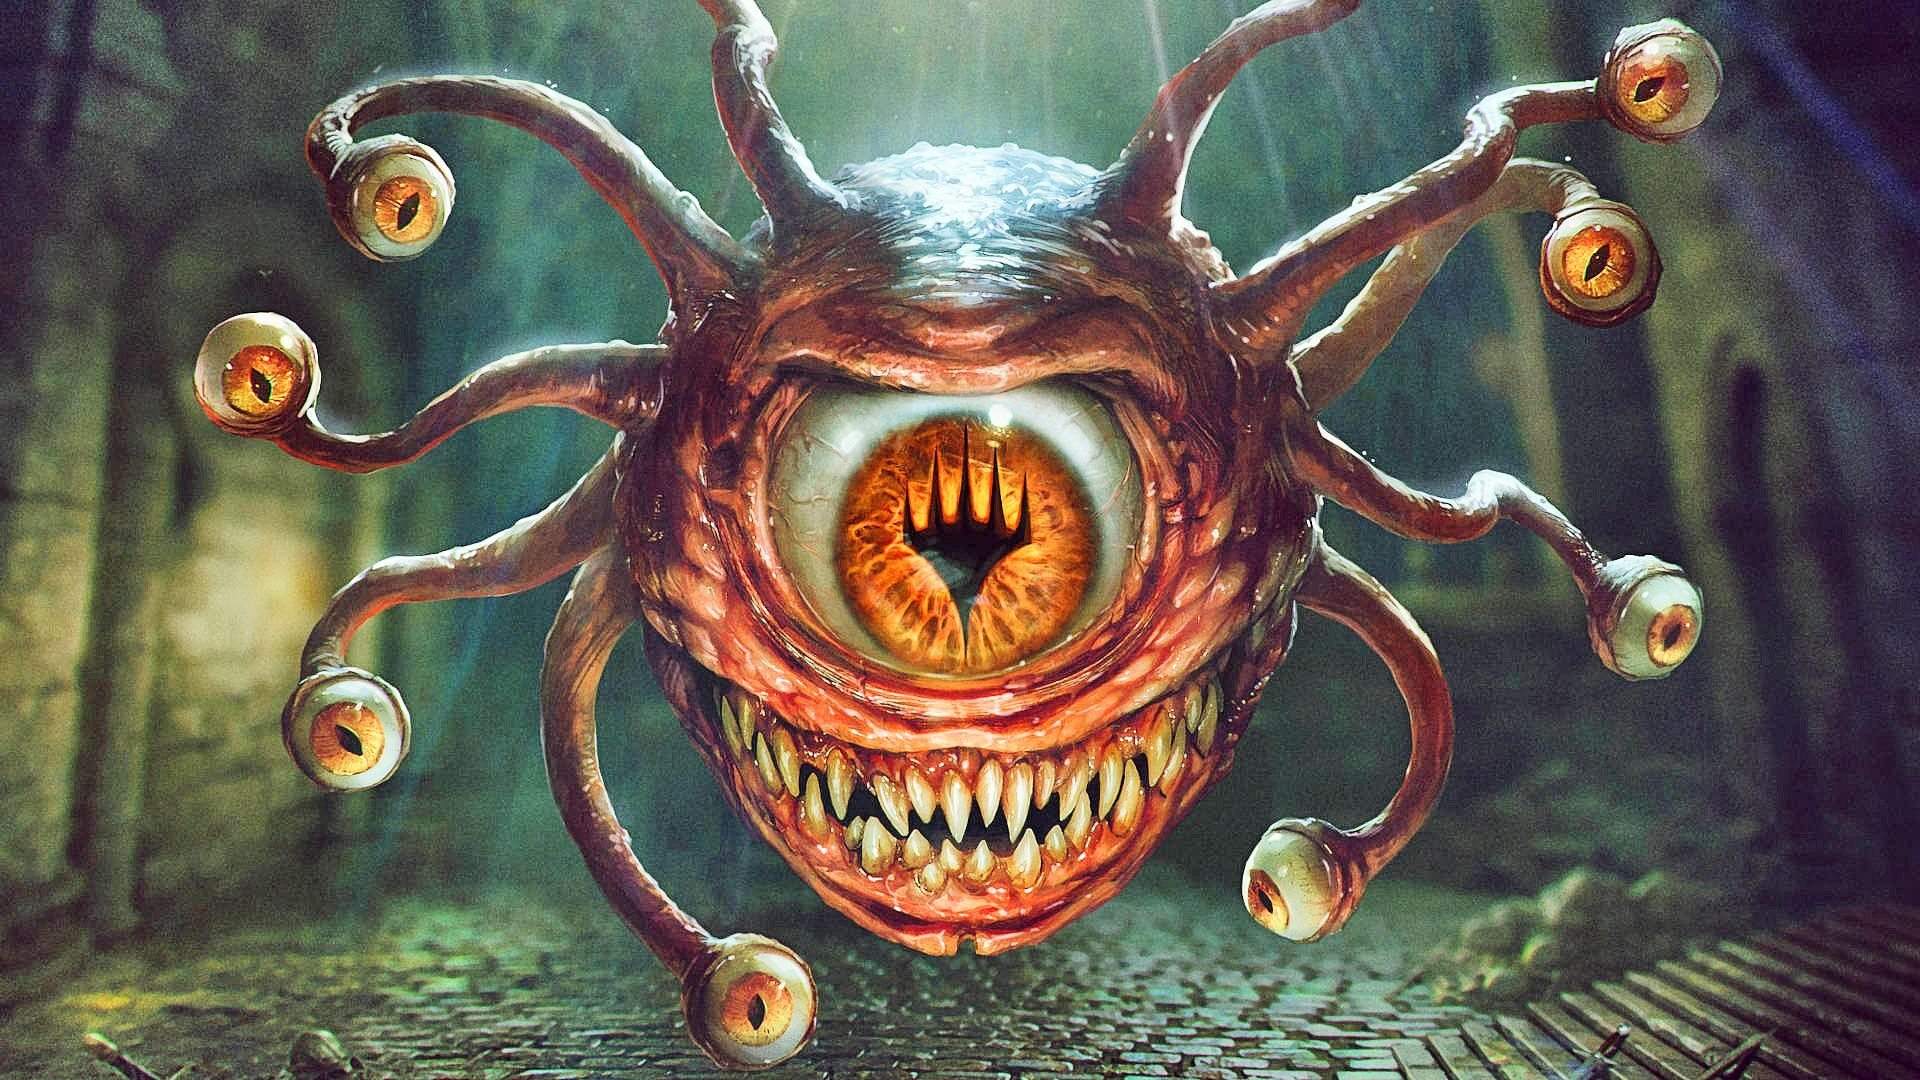 Magic the Gathering: Arena's new set is a love letter to D&D